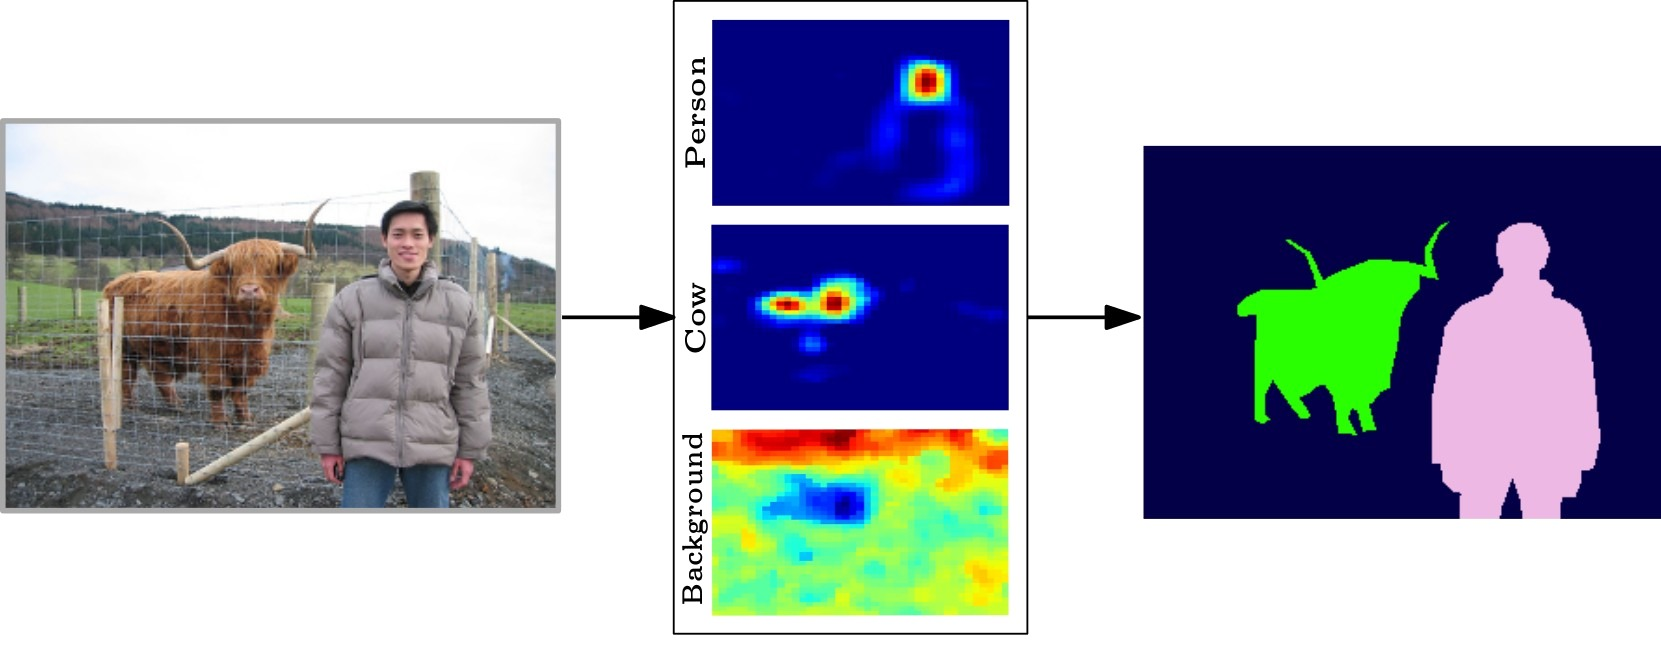 Seed, Expand and Constrain: Three Principles for Weakly-supervised Image Segmentation